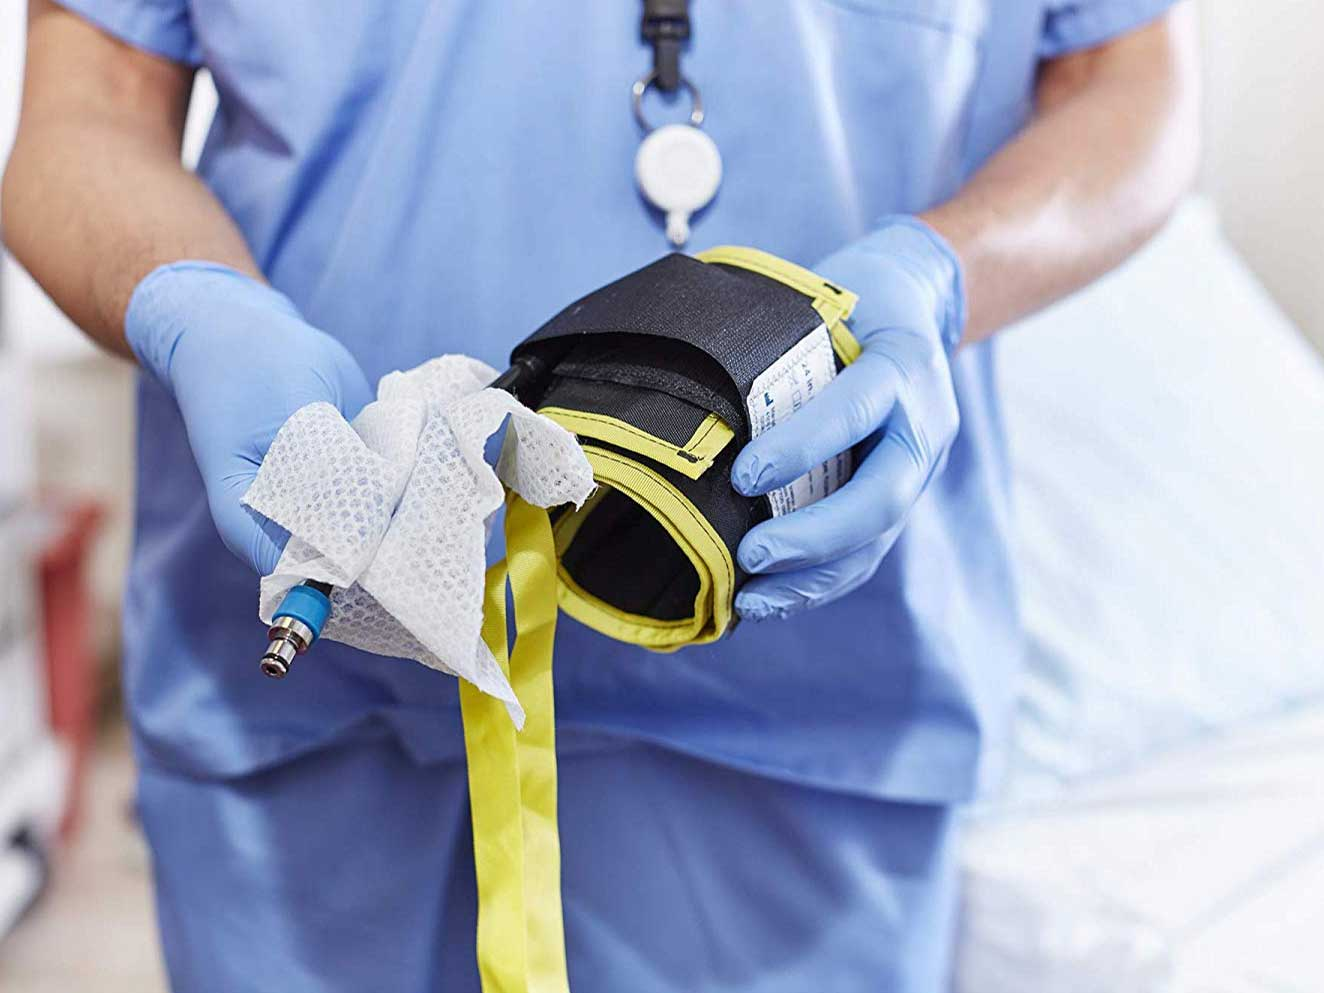 Nurse wipes down a blood pressure cuff with disinfecting wipes.